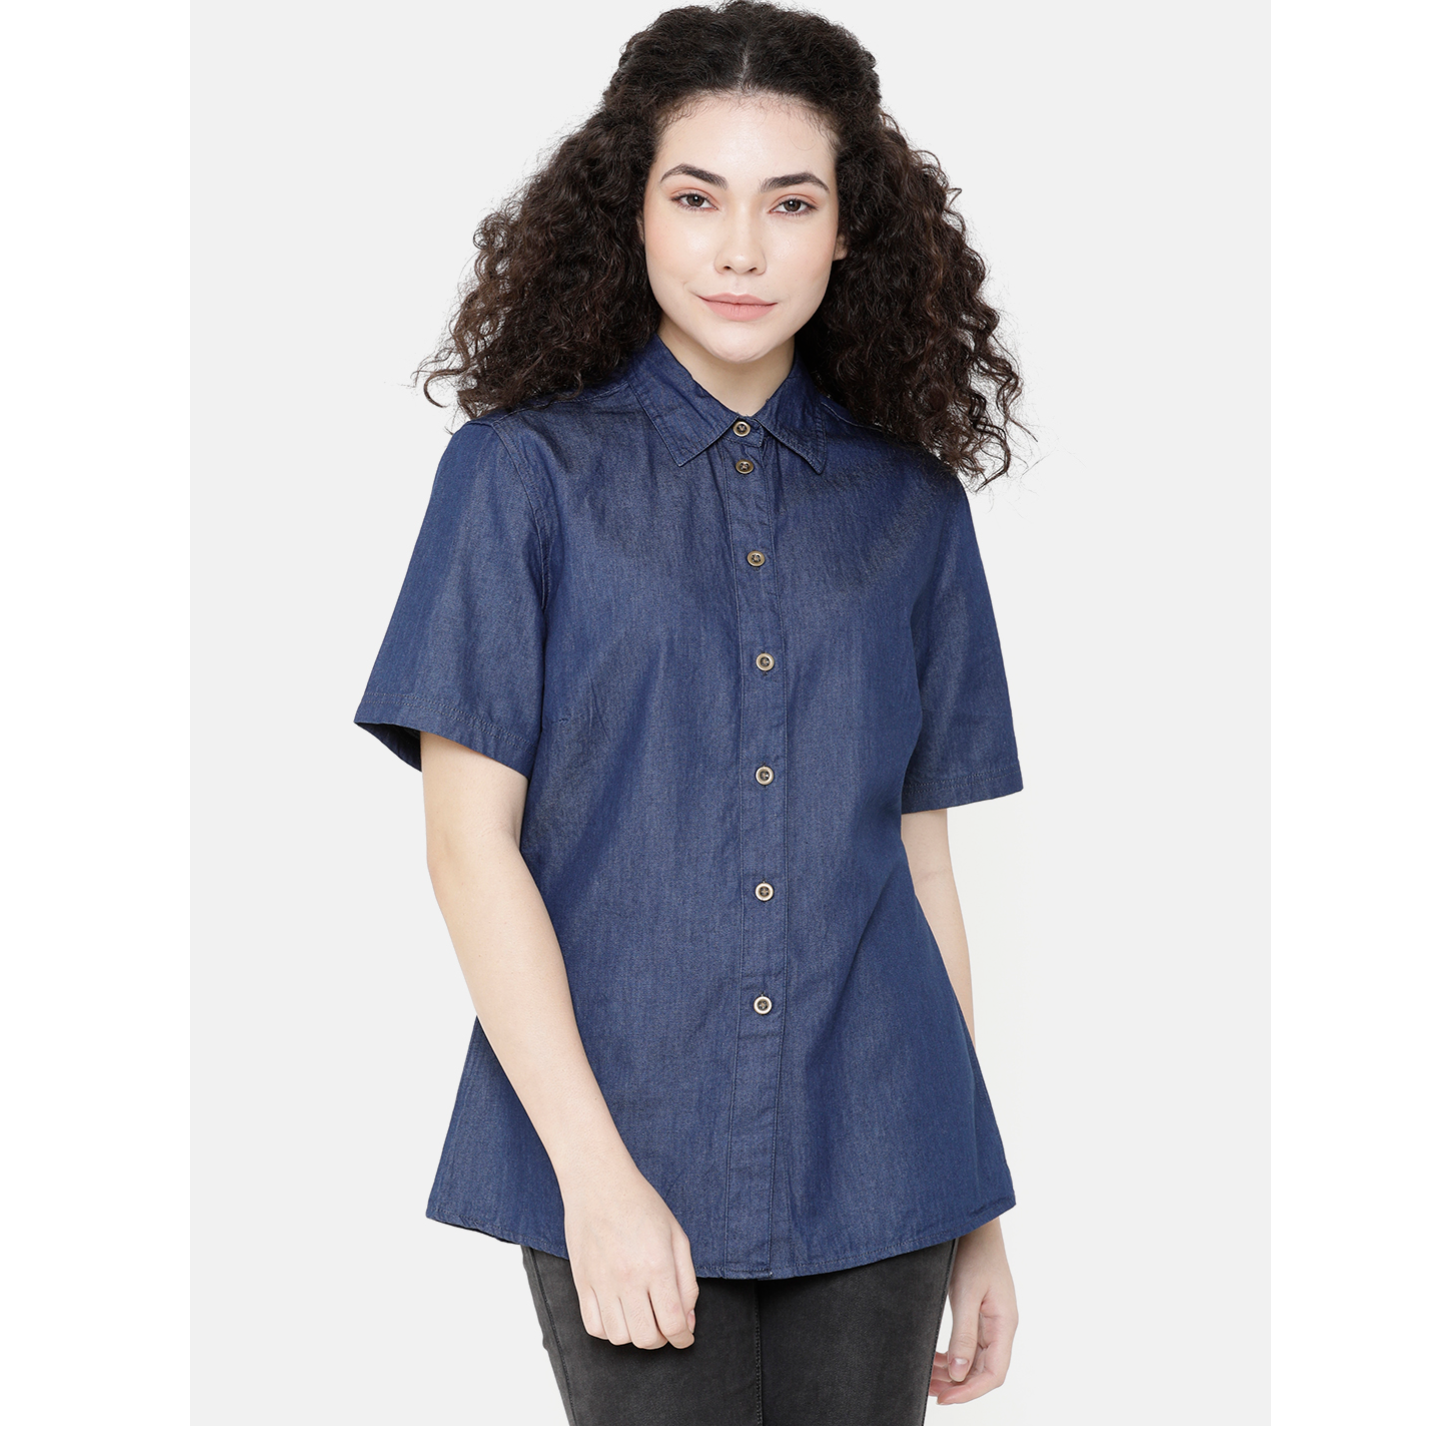 Women Blue Solid Shirt Style Top